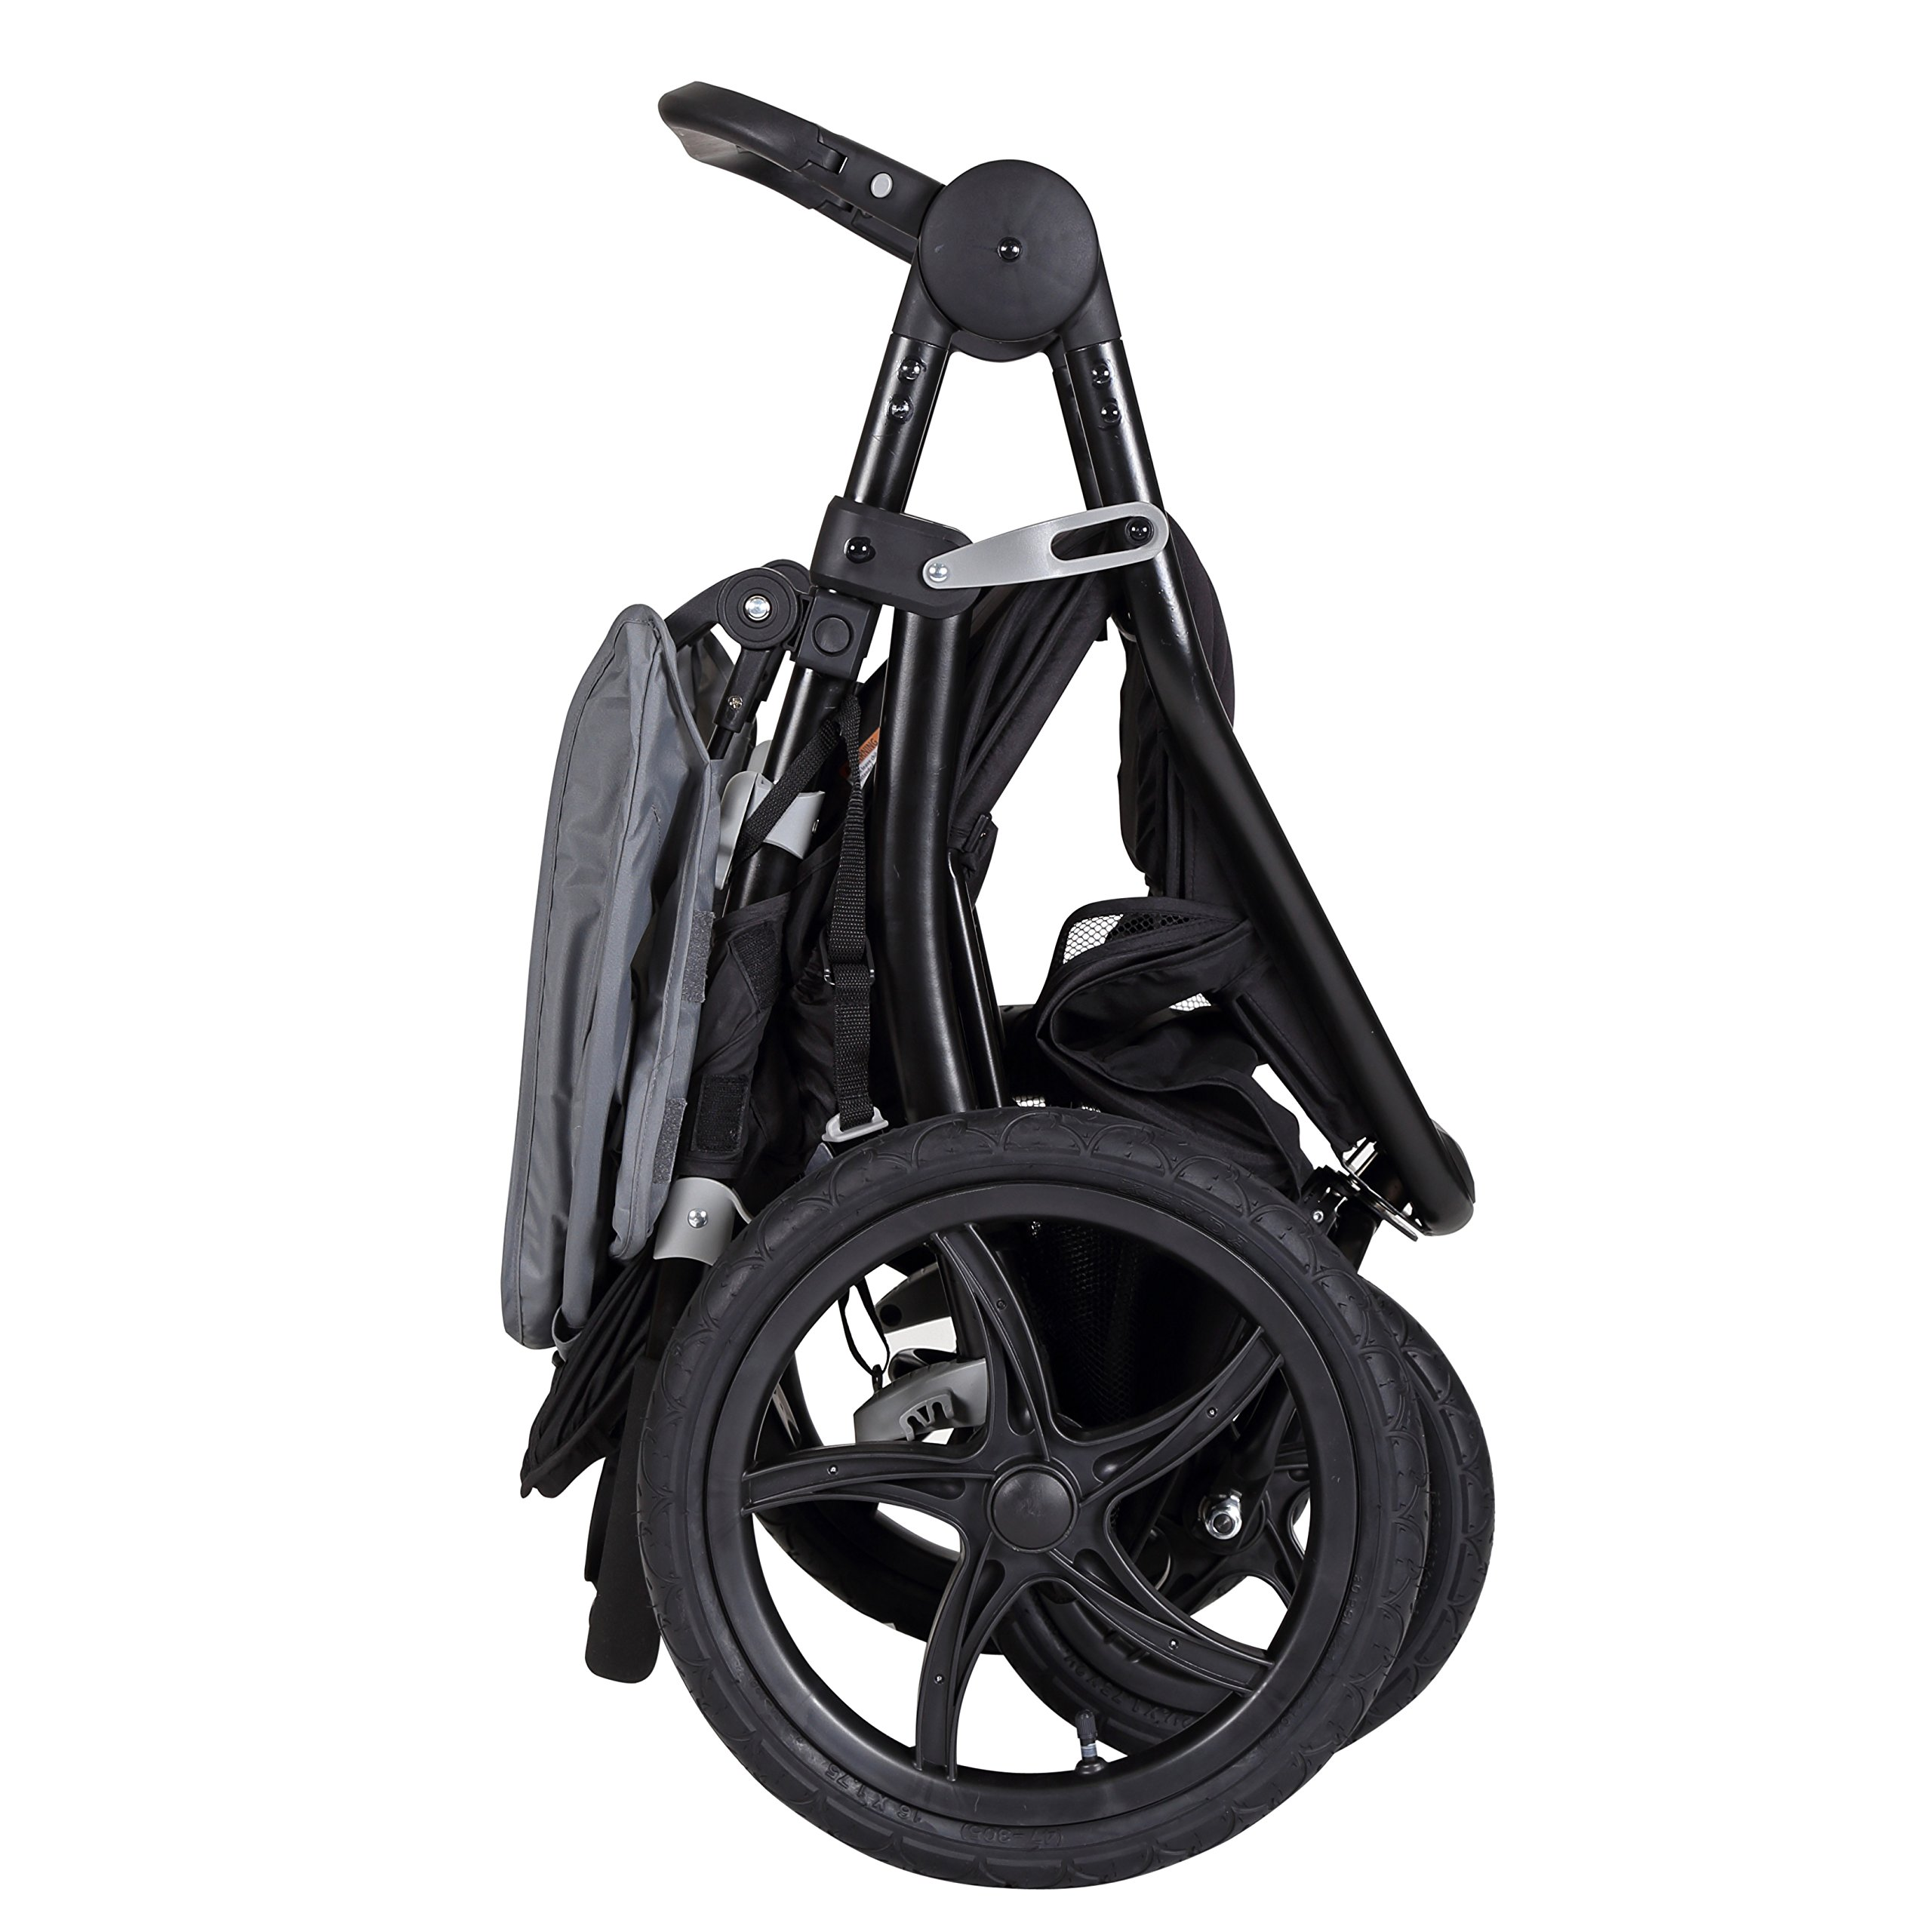 Baby Trend Stealth Jogging Stroller, Alloy by Baby Trend (Image #5)